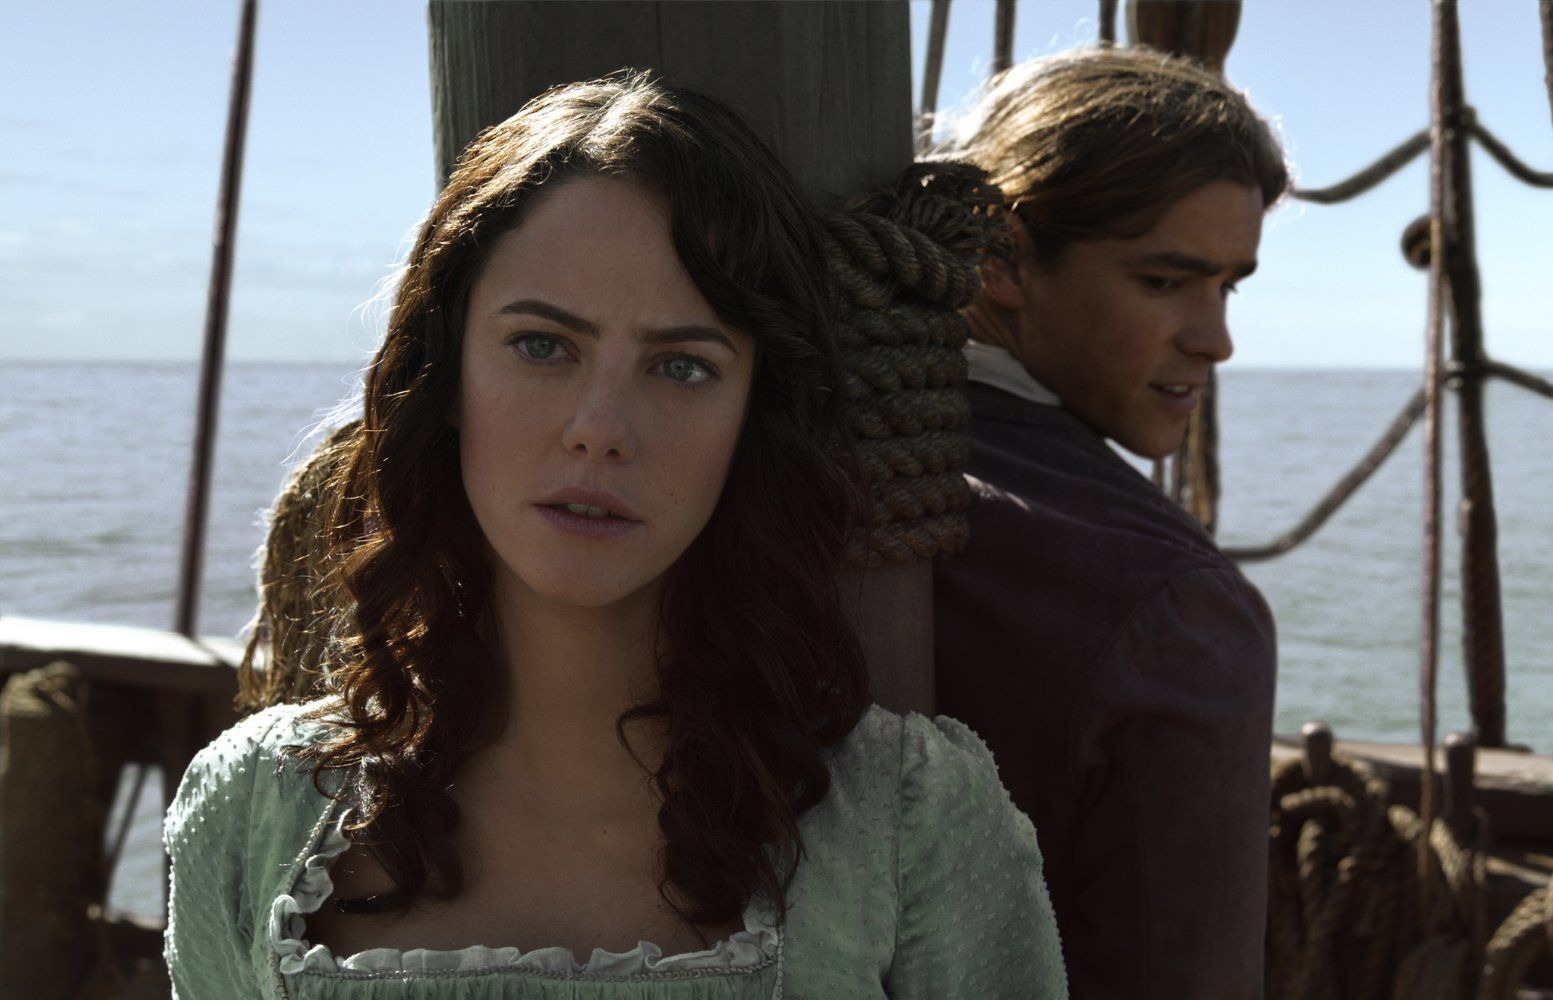 Pirates Of The Caribbean Dead Men Tell No Tales Will Turner Kaya Scodelario And Brenton Thwaites In Pirates Of The Caribbean Dead Men Tell No Tales 33 Pirates Of The Caribbean Kaya Scodelario Carina Smyth